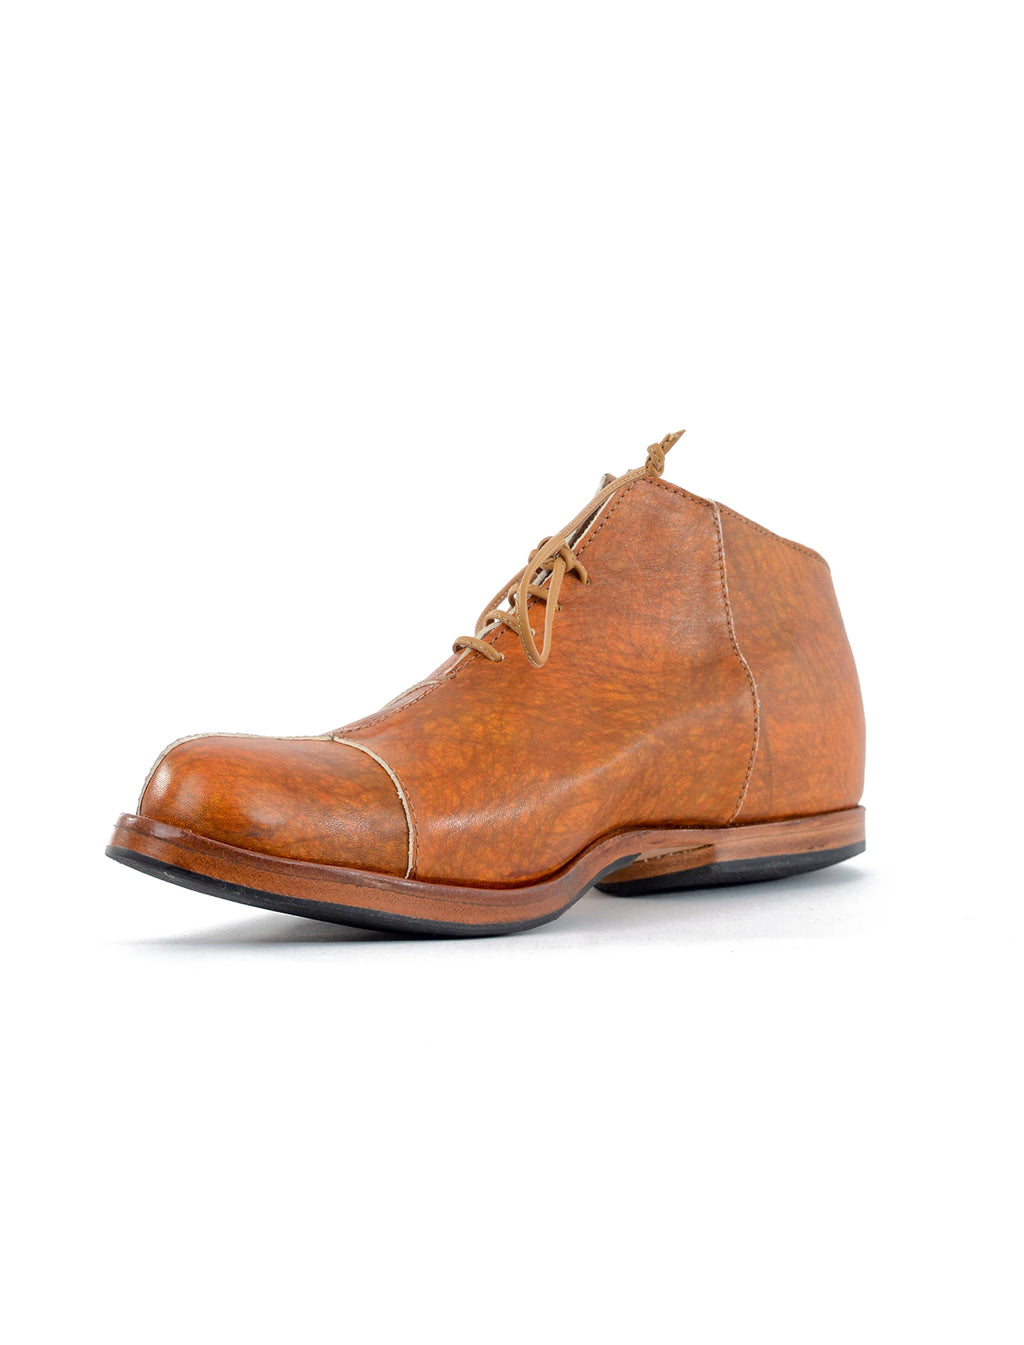 Cydwoq Face Oxford Bootie, Argilla Tan